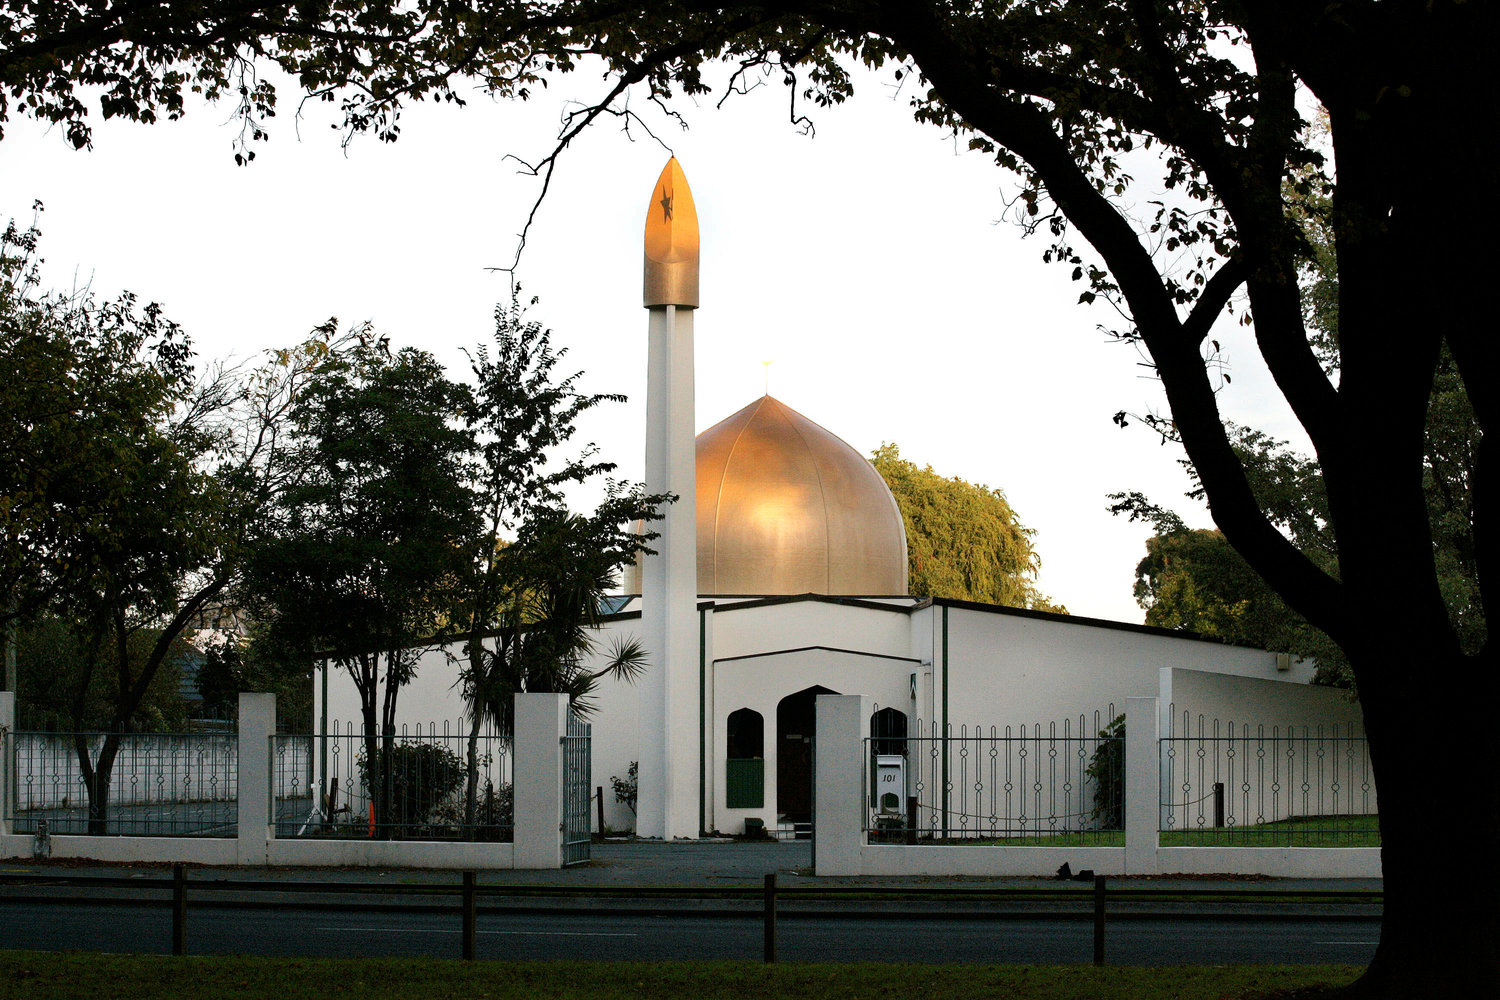 This is a view of the Al Noor Mosque on Deans Avenue in Christchurch, New Zealand, taken in 2014. The mosque was one of two attacked March 15; at least 49 people were killed.